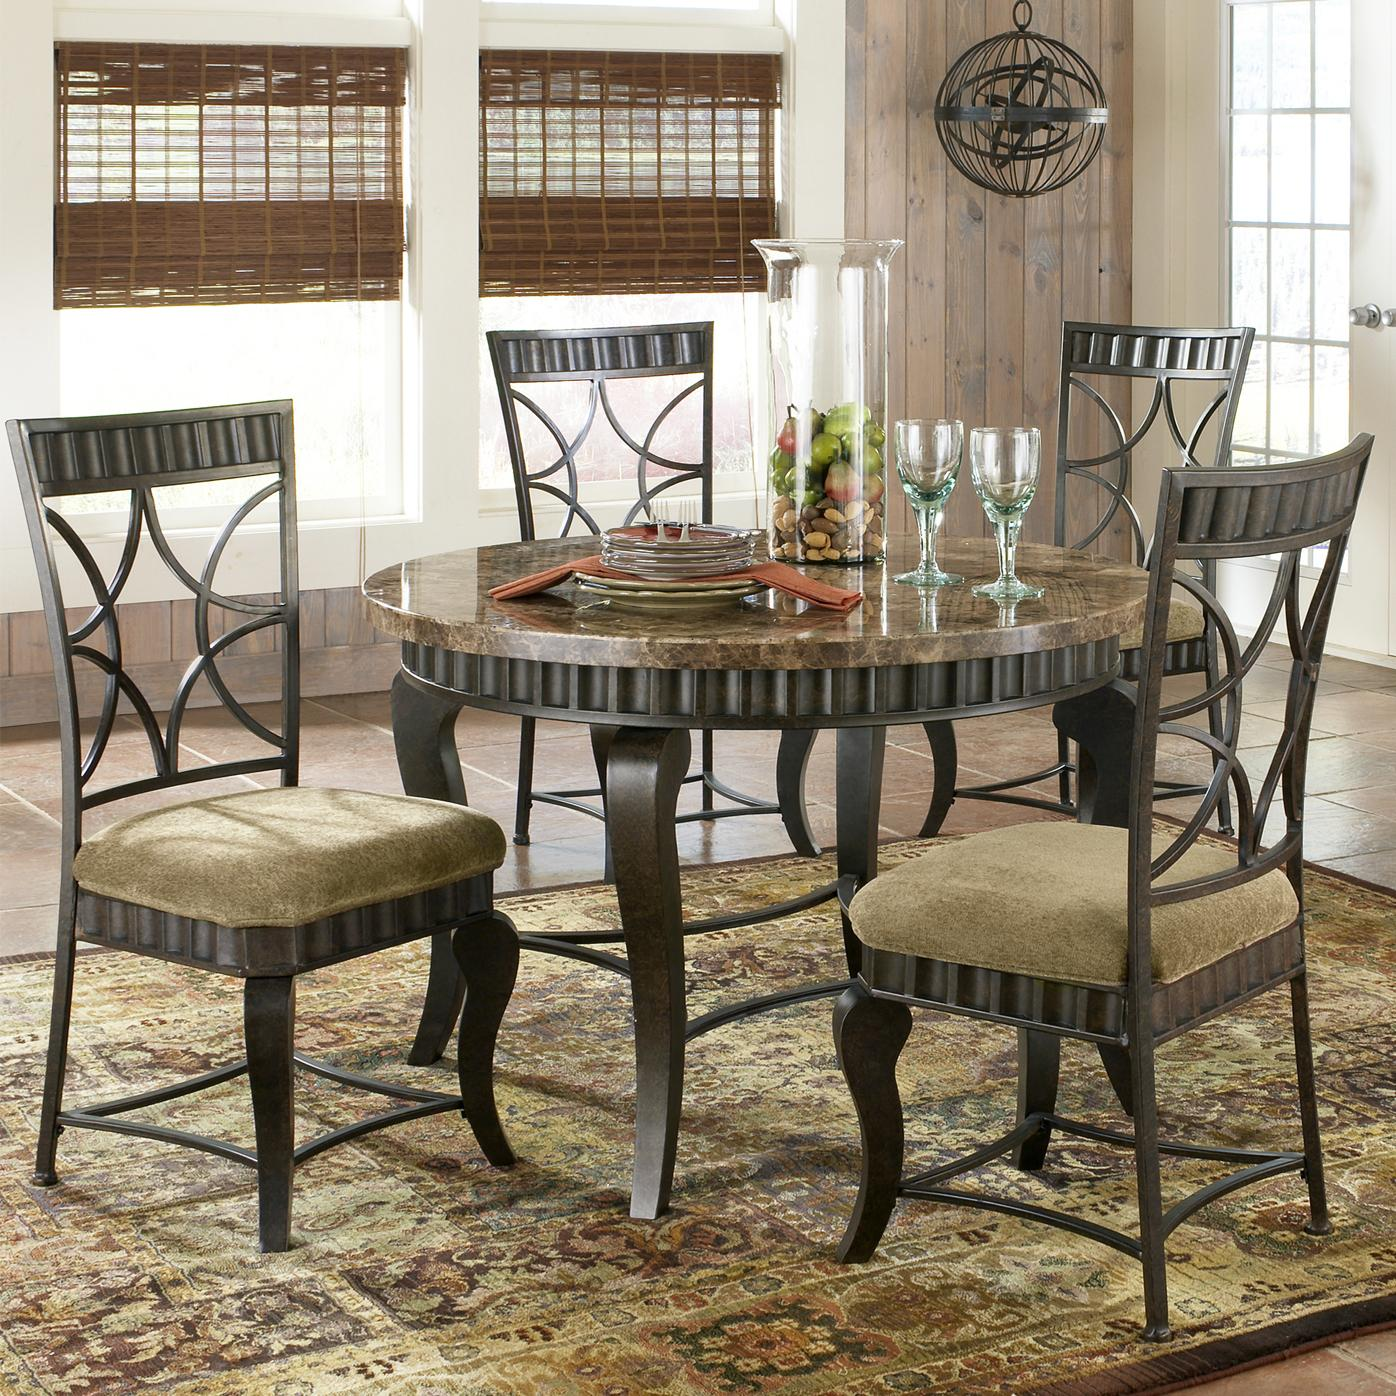 5 Piece Faux Marble Top Dining Table Set